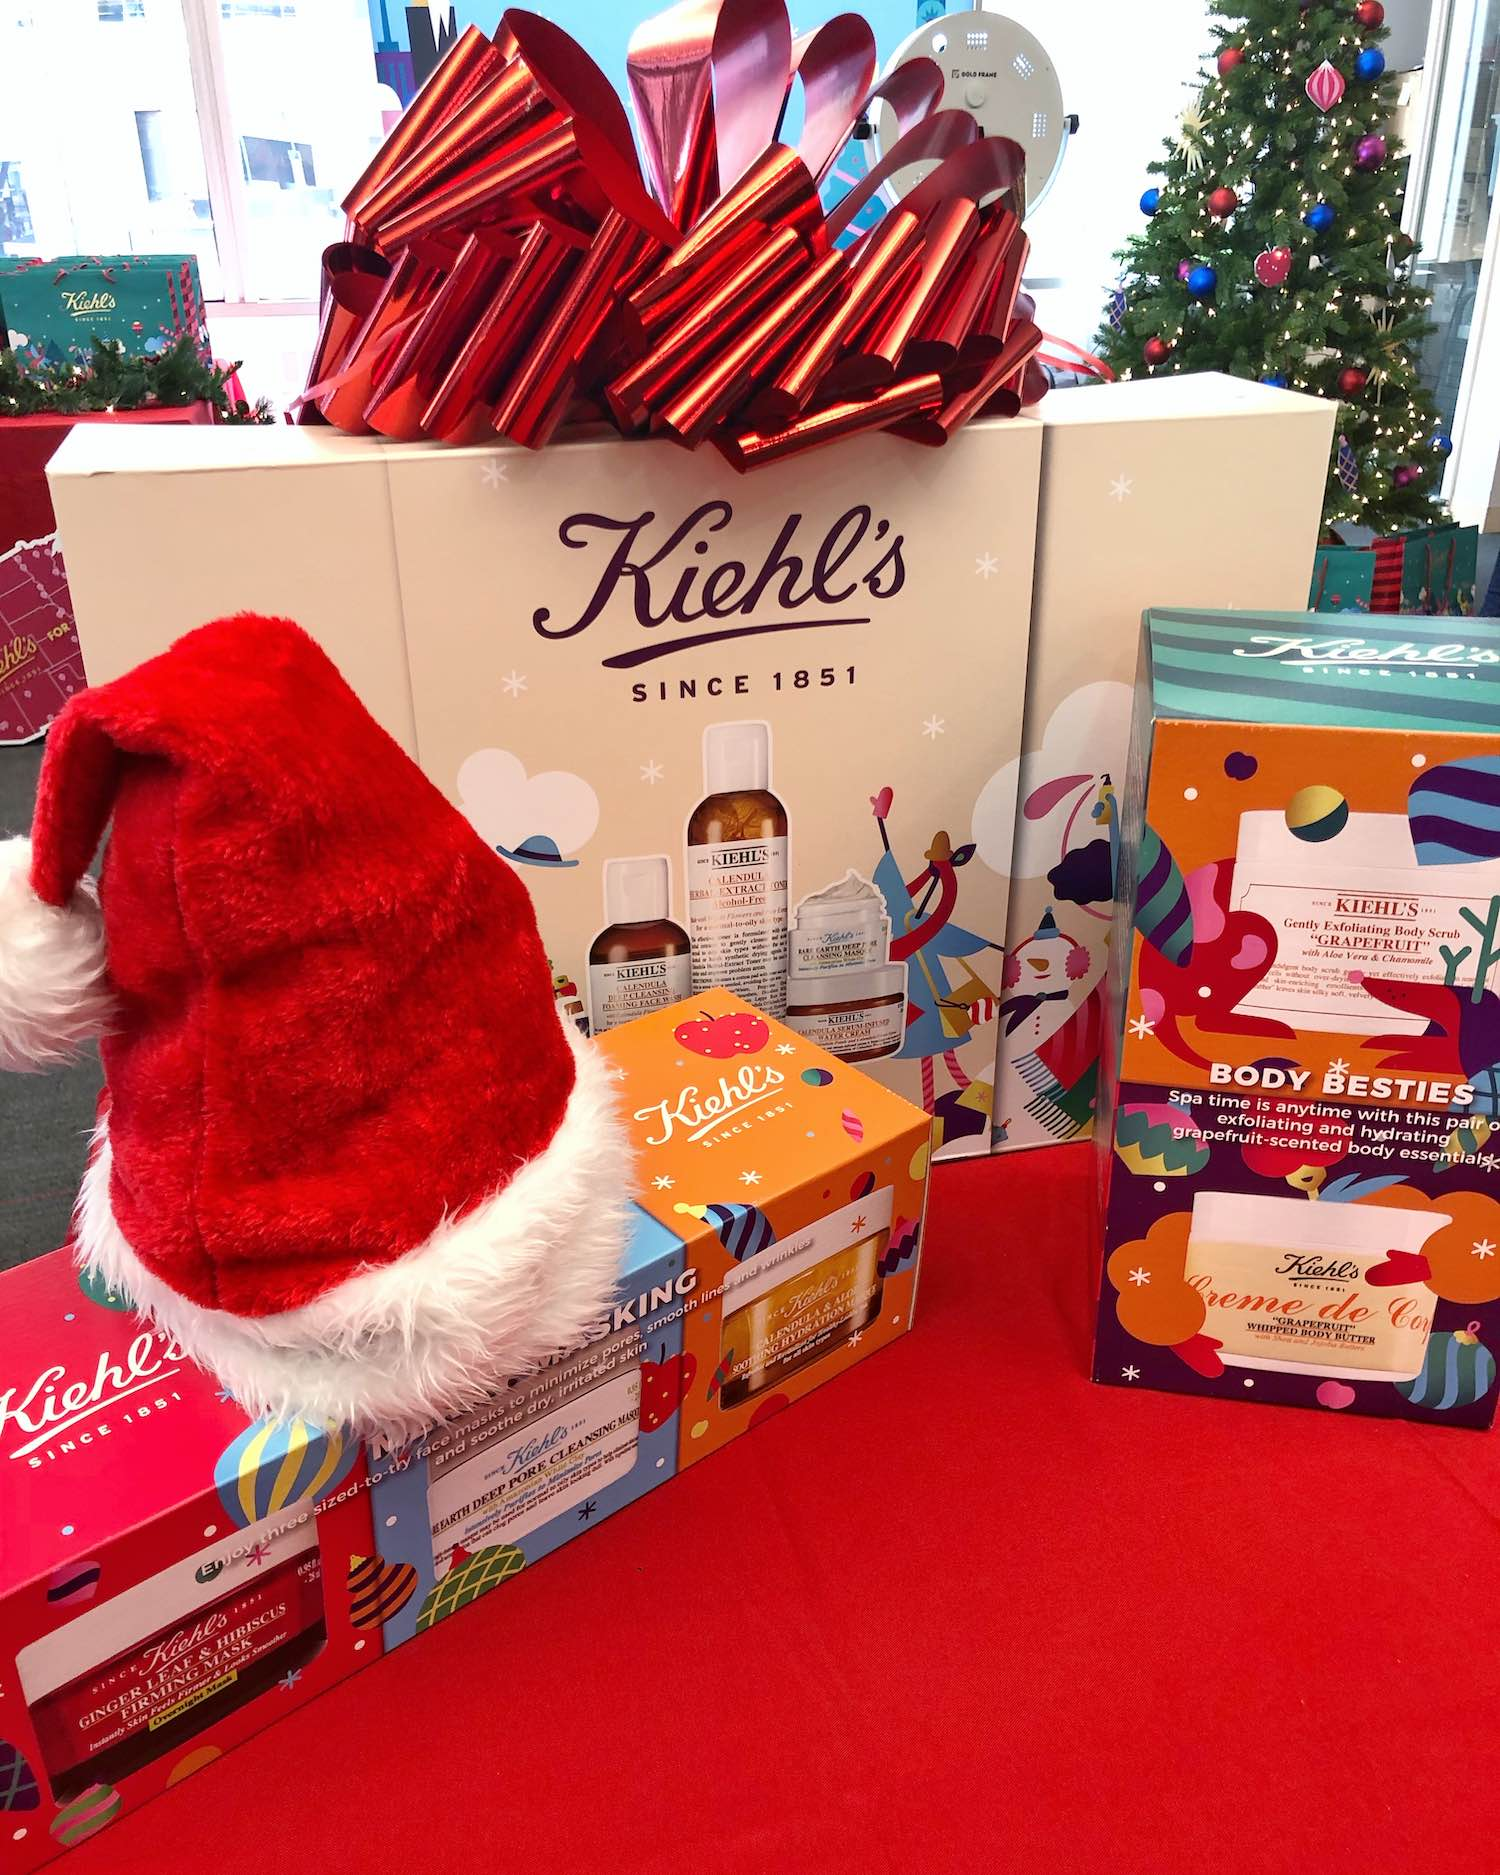 Beauty Gifts That Give Back - Kiehl's Holiday Kits